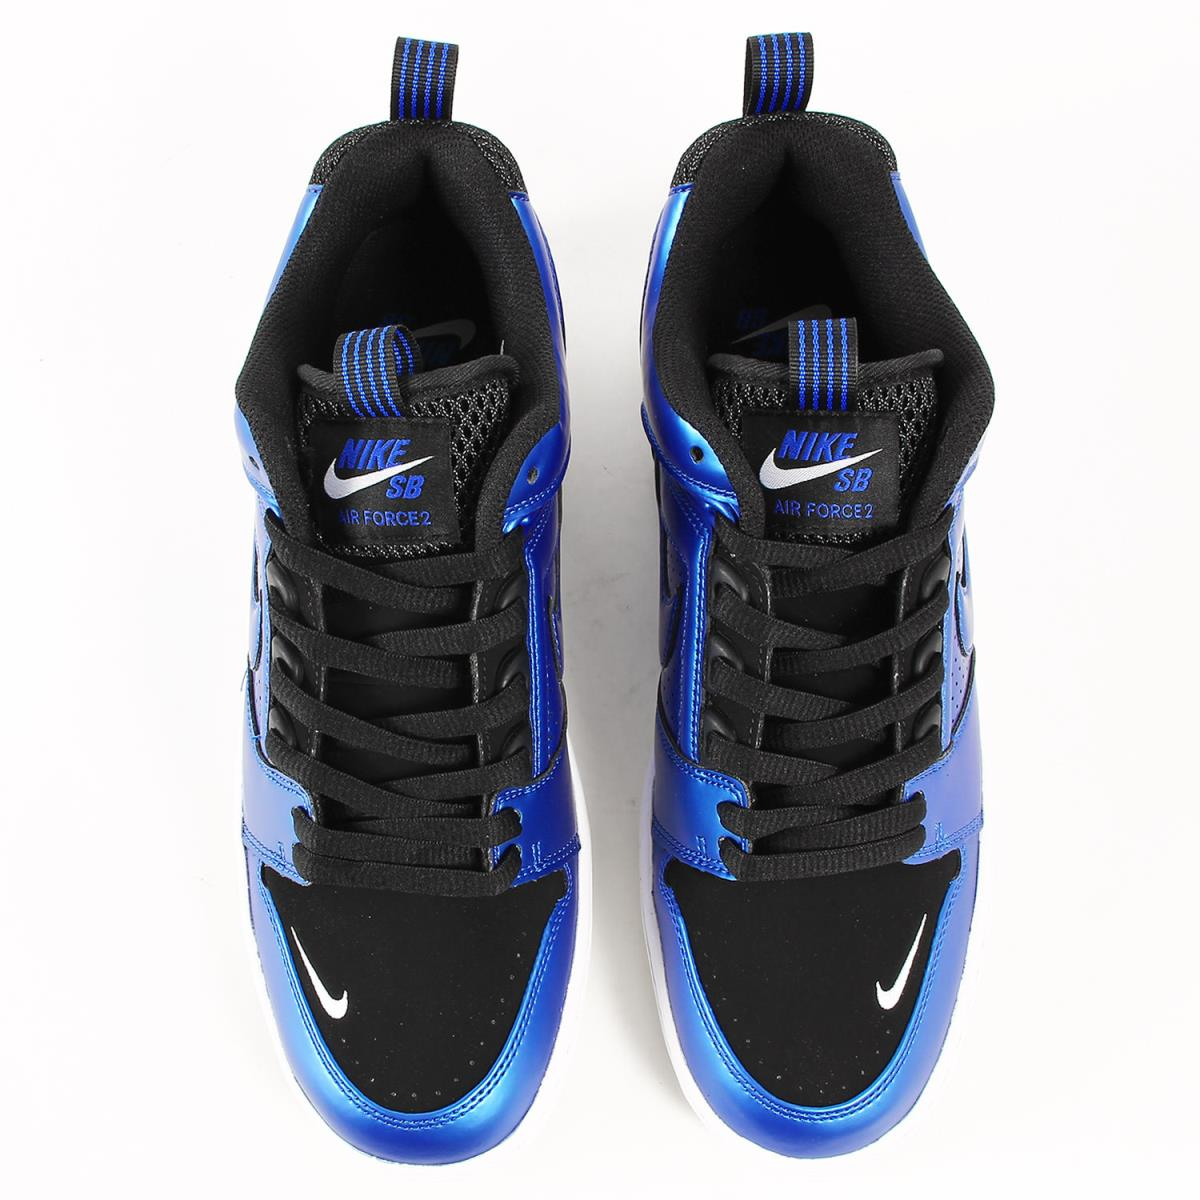 classic good out x arriving NIKE (Nike) SB AIR FORCE 2 LOW QS FOAMPOSITE ONE (AV3800-440) international  blue US8.5(26.5cm)